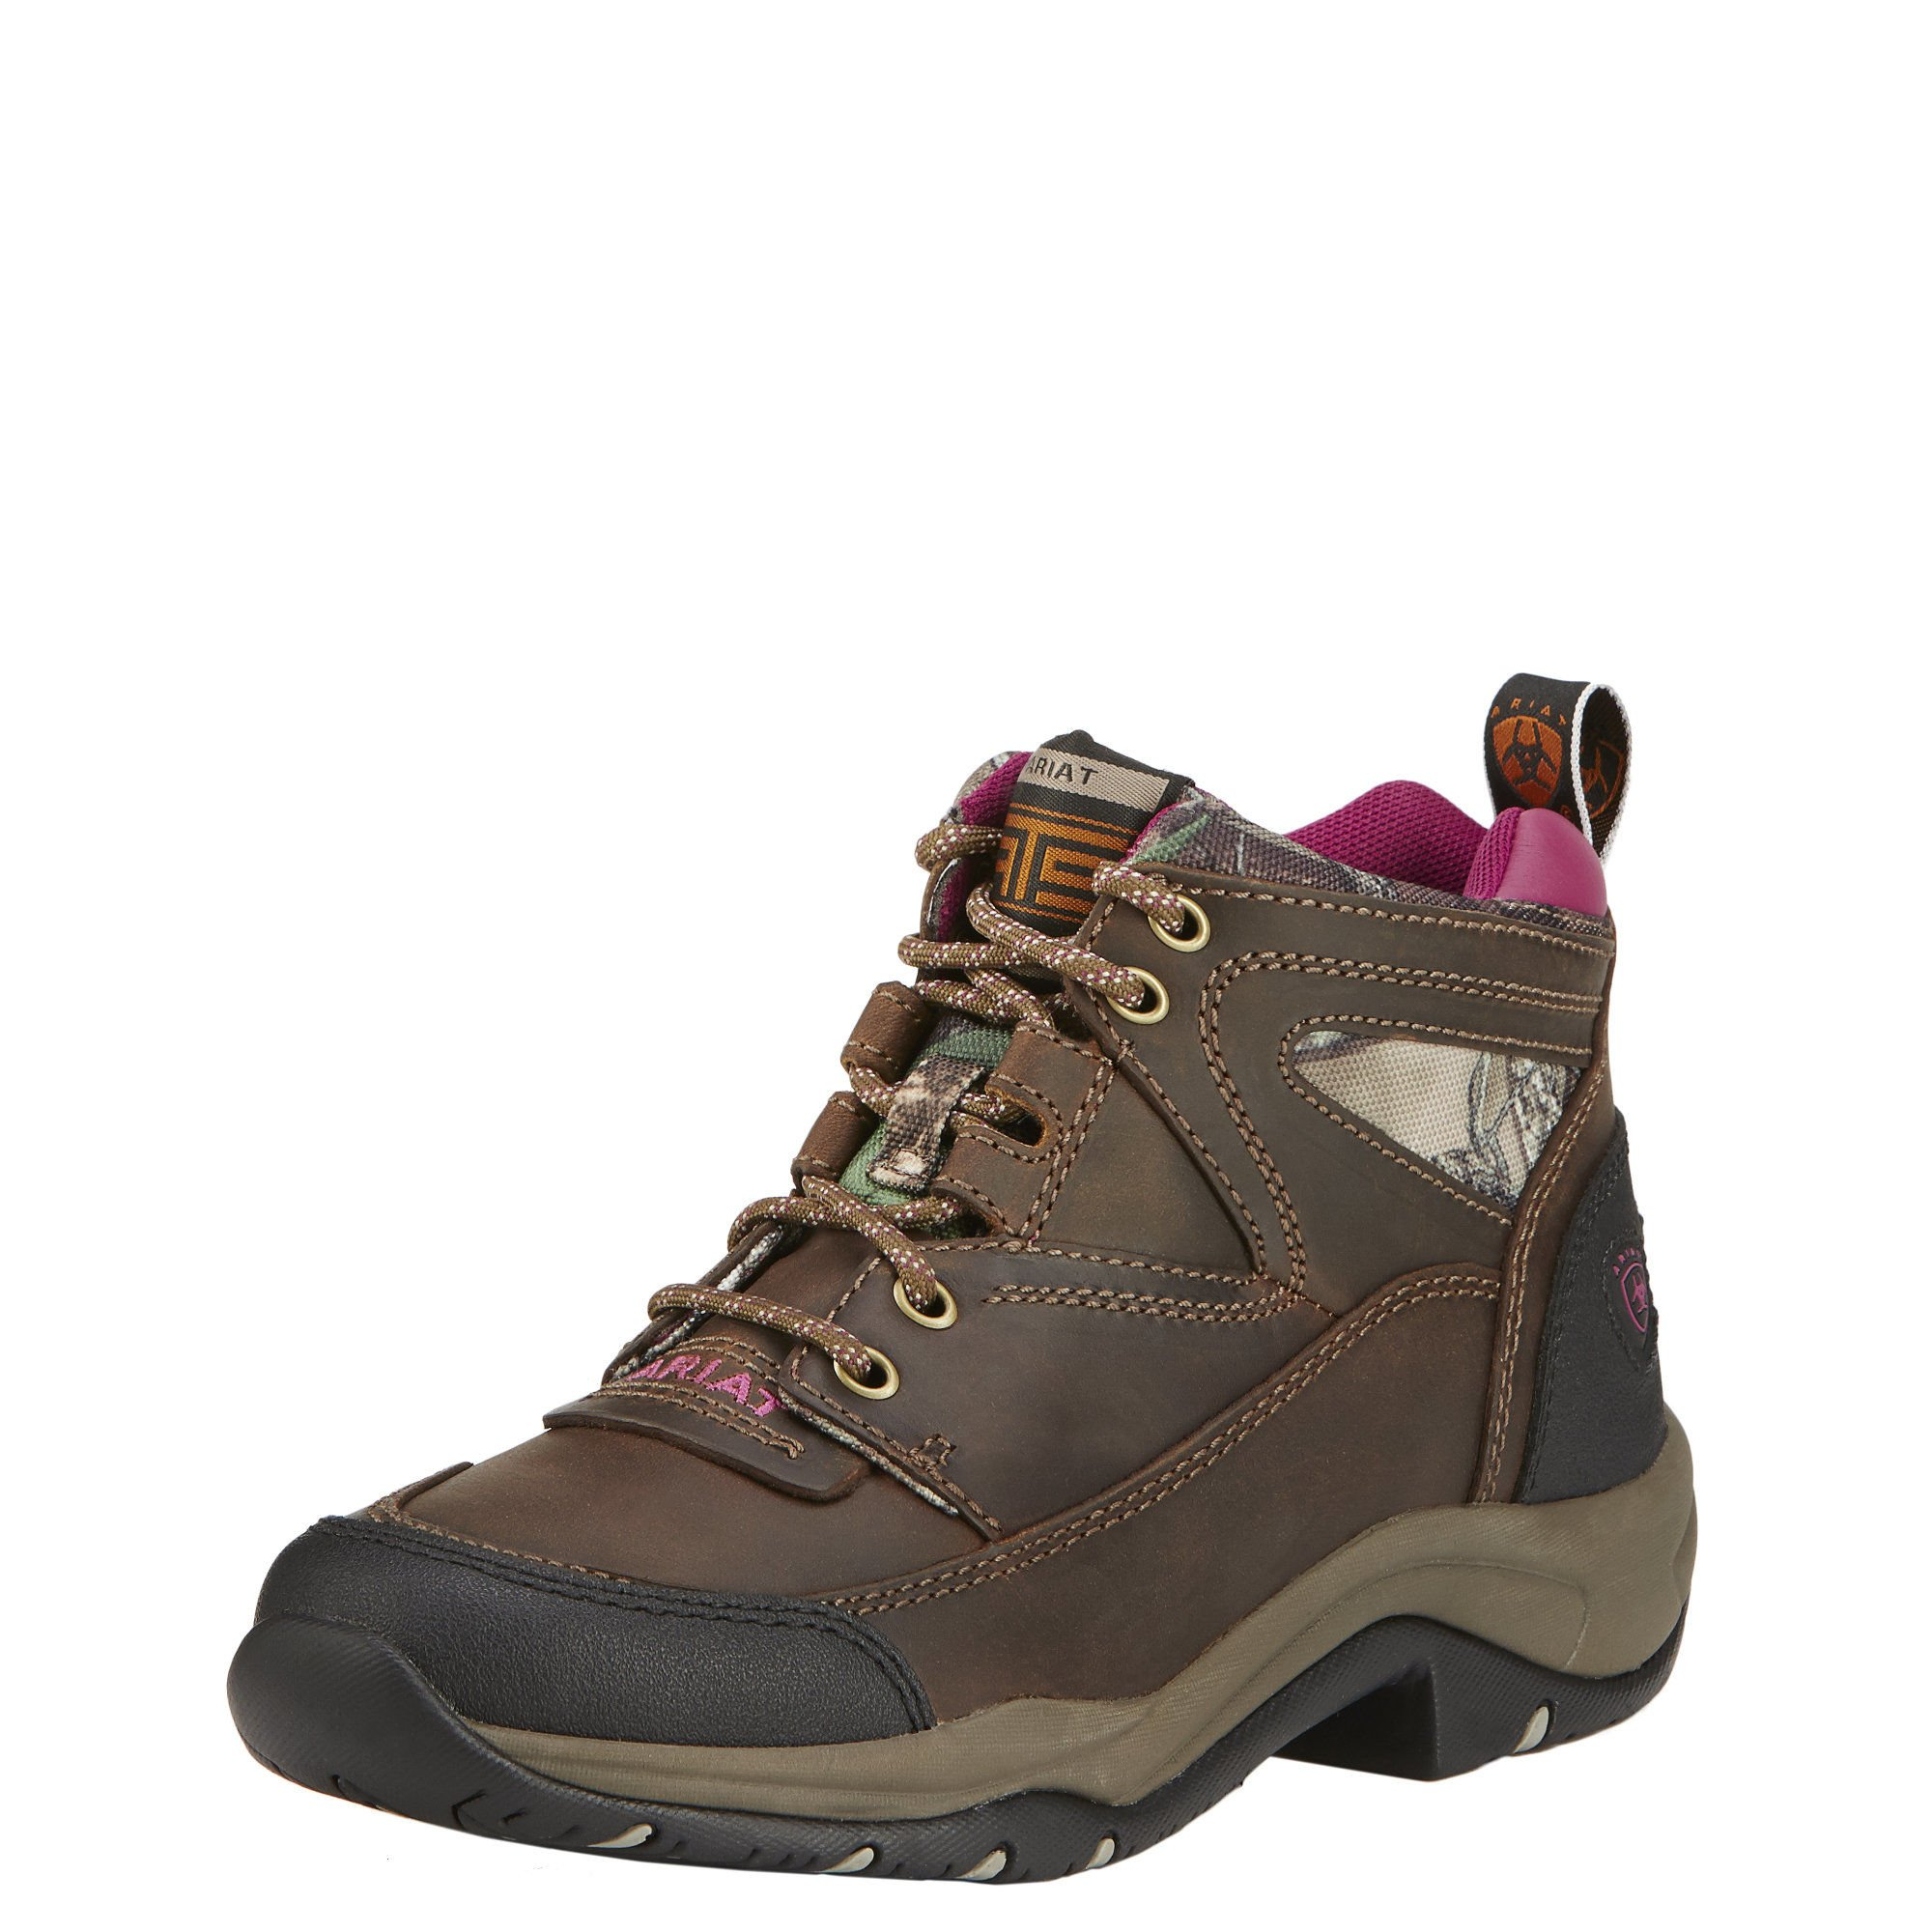 Ariat Women's Terrain Hiking Boot, Pink Multi/True Timber, 7.5 M US